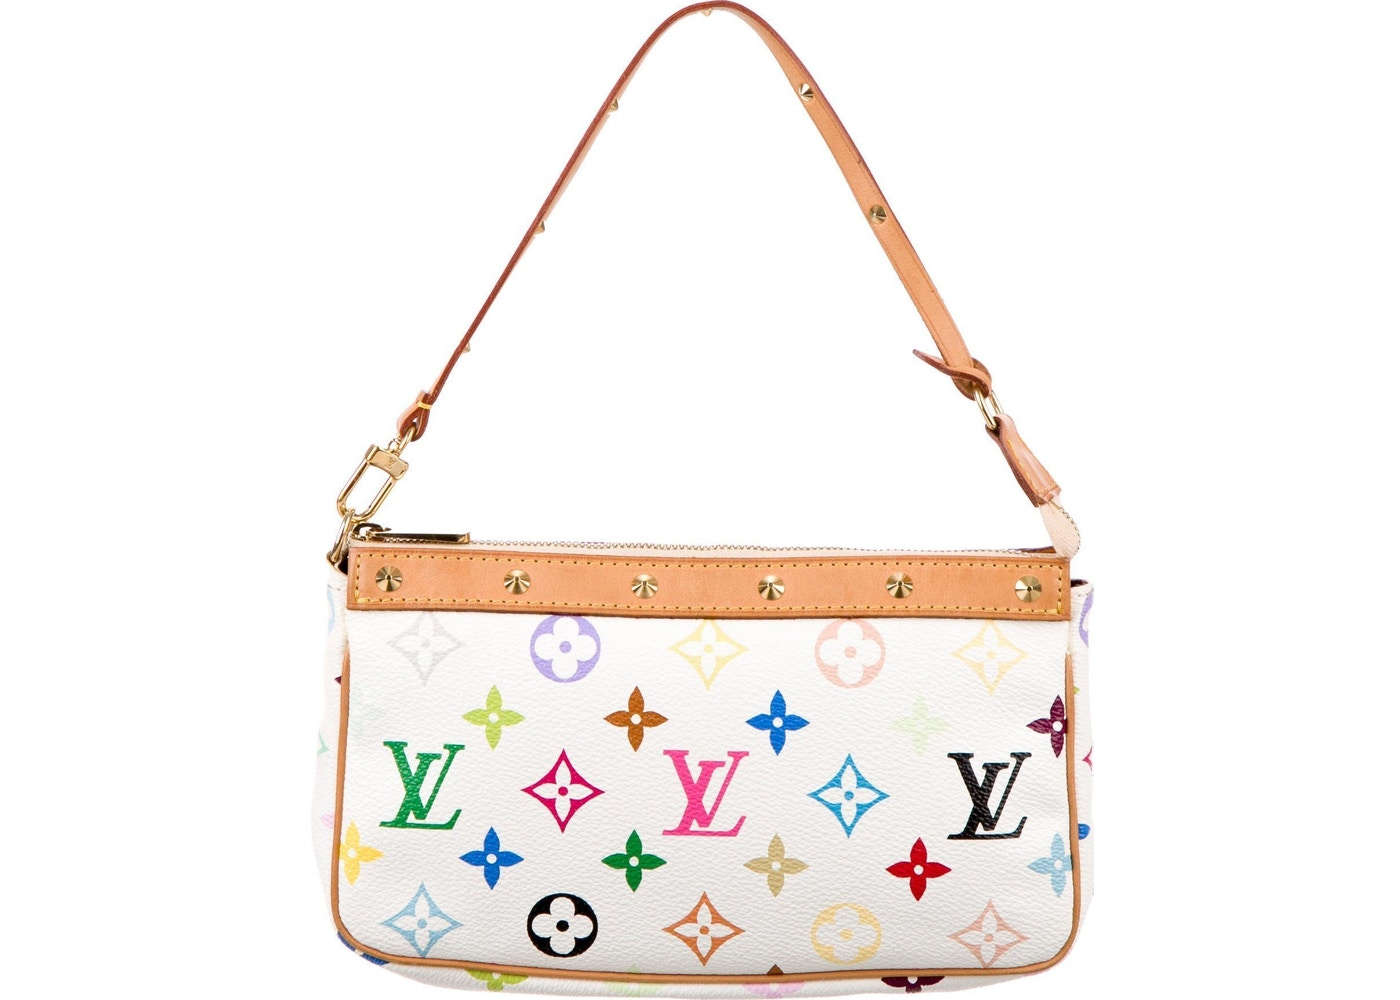 824aafe9b11b Louis Vuitton Pochette Monogram Multicolore White. Monogram Multicolore  White